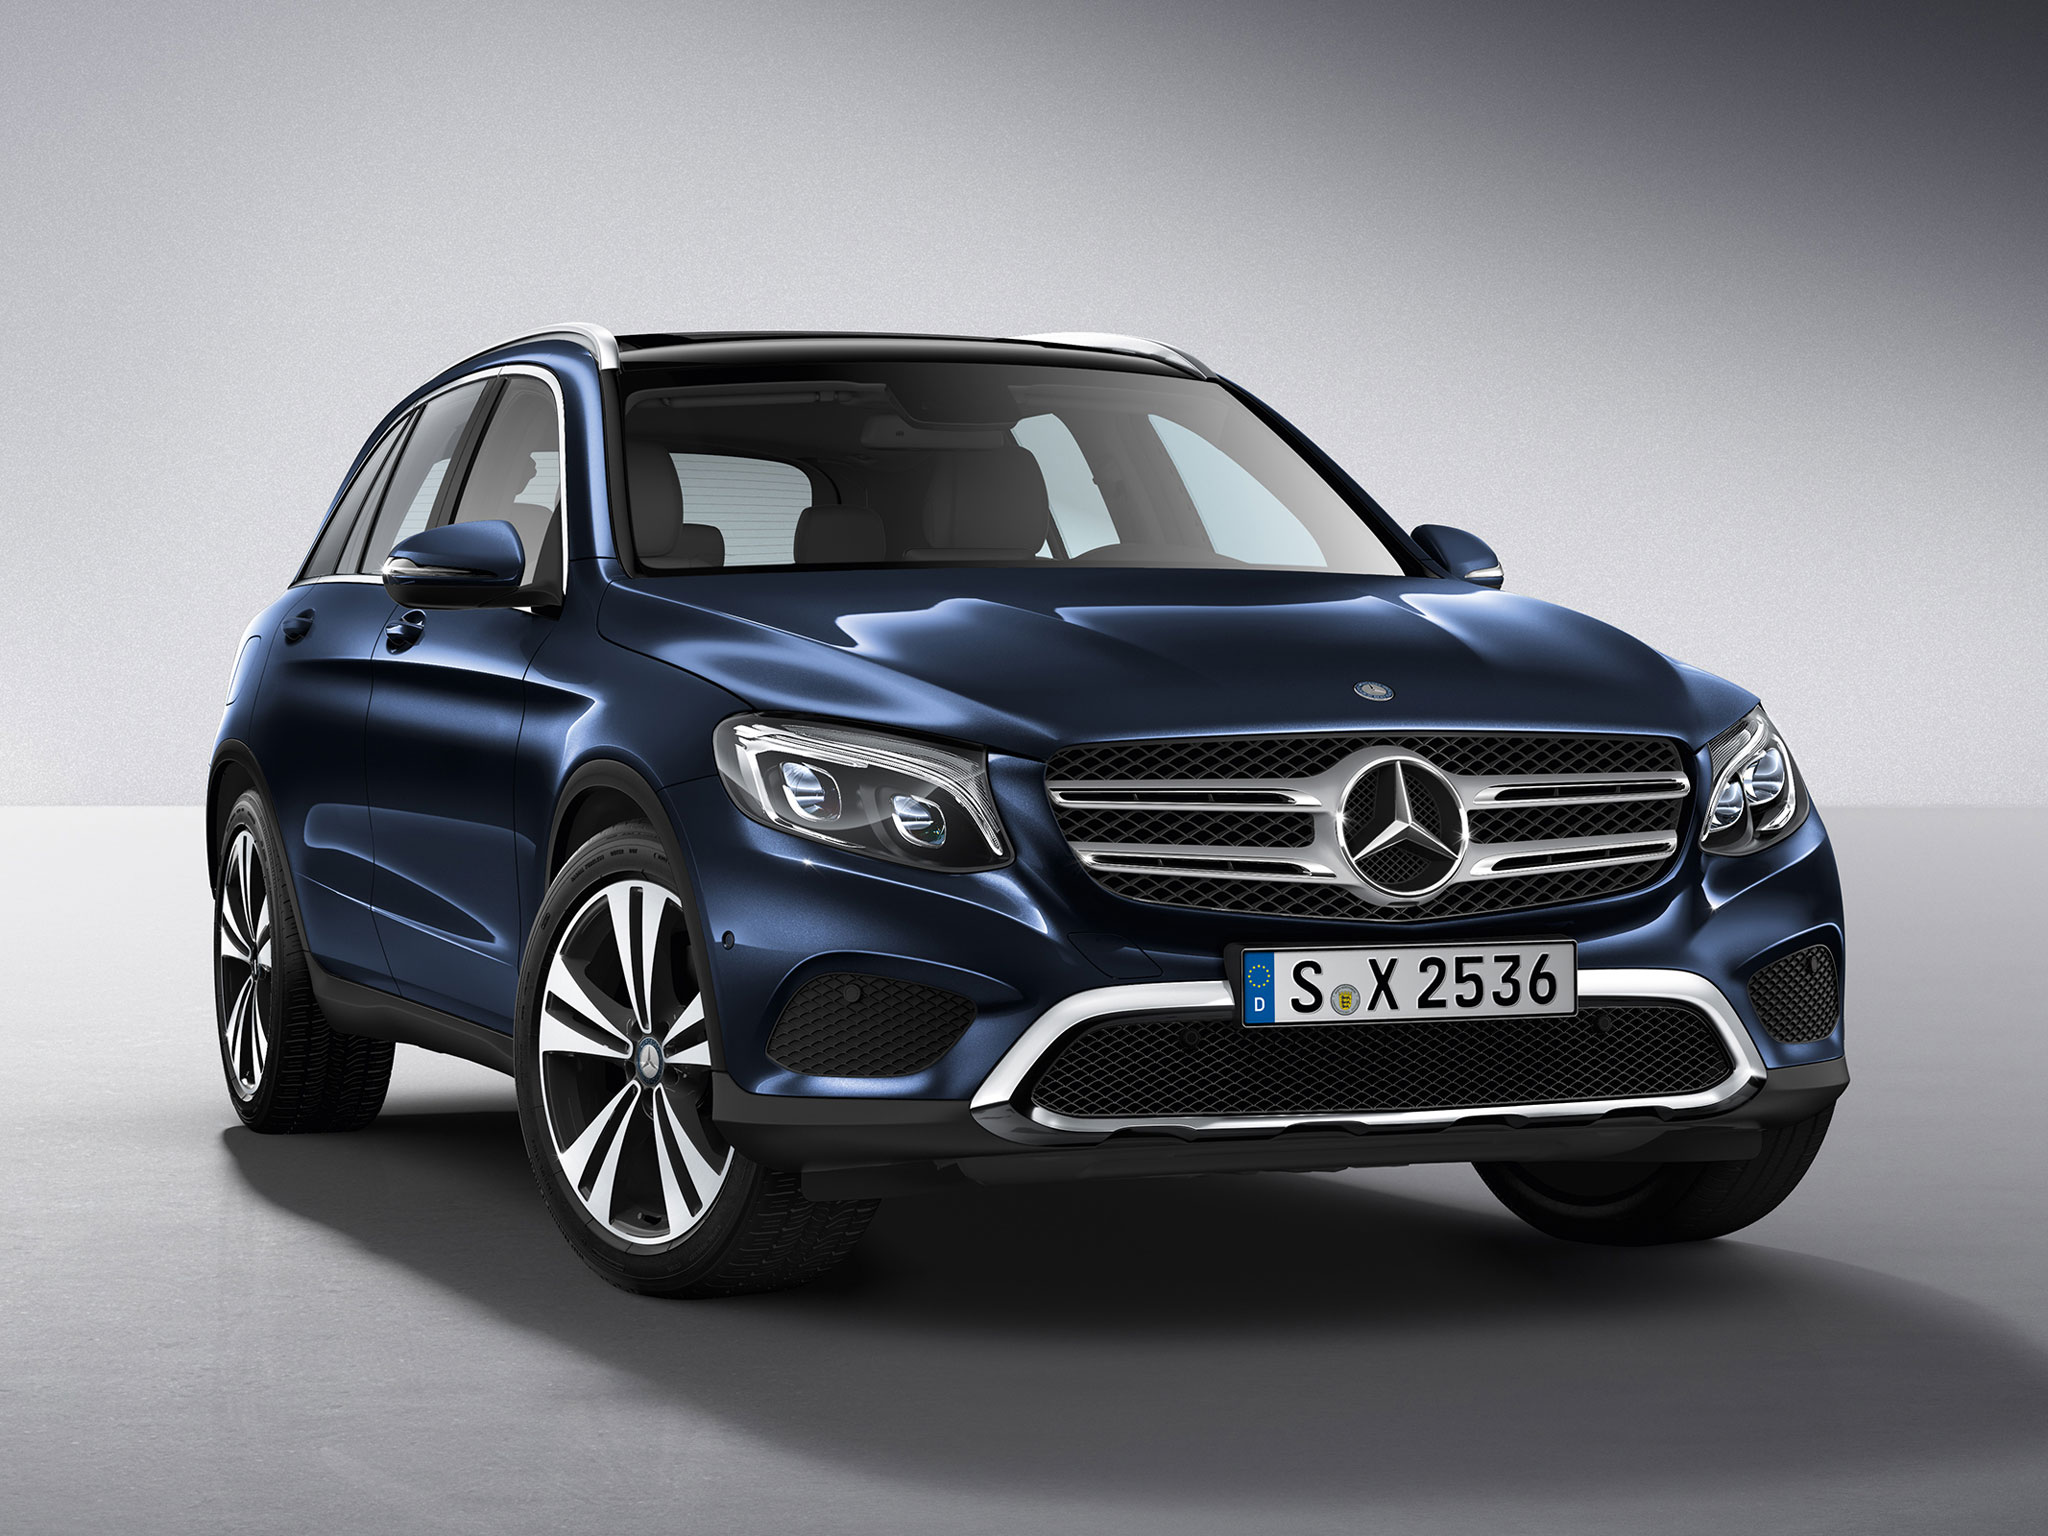 Mercedes benz glc 2016 hd wallpapers free download for Mercedes benz glc